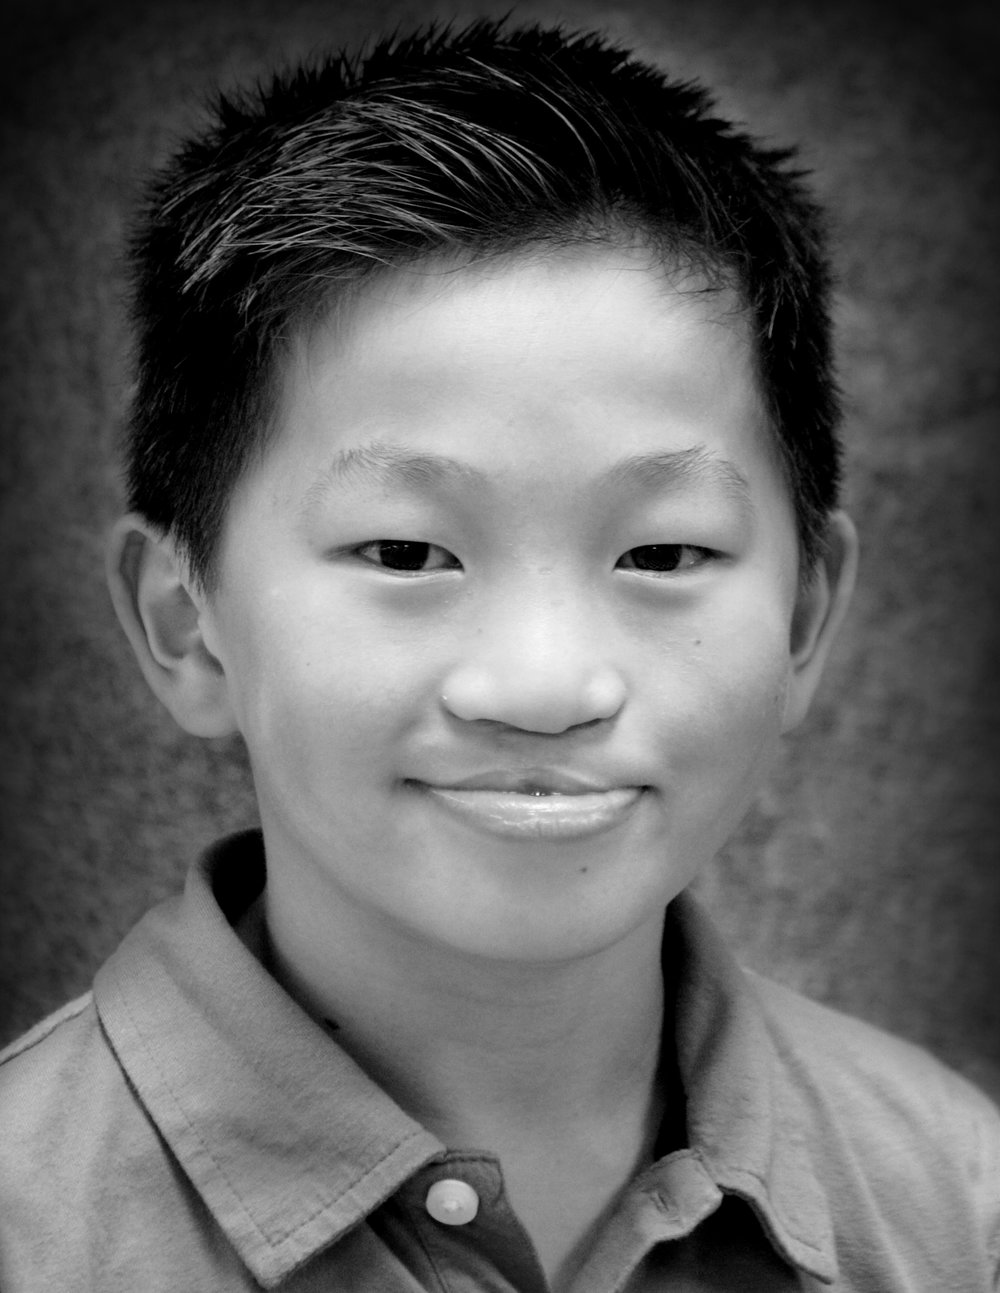 Blind School Stude  nt  //   Evan Gerig   Evan is 10 years old and is in his third year of drama with Fire and Light Academy. His favorite roles have been as an Oompa-Loompa in Charlie and the Chocolate Factory and as Grey the wolf in The Jungle Book. When he is not on stage, Evan loves reading books, collecting almost anything, and creating videos for his Youtube channel.